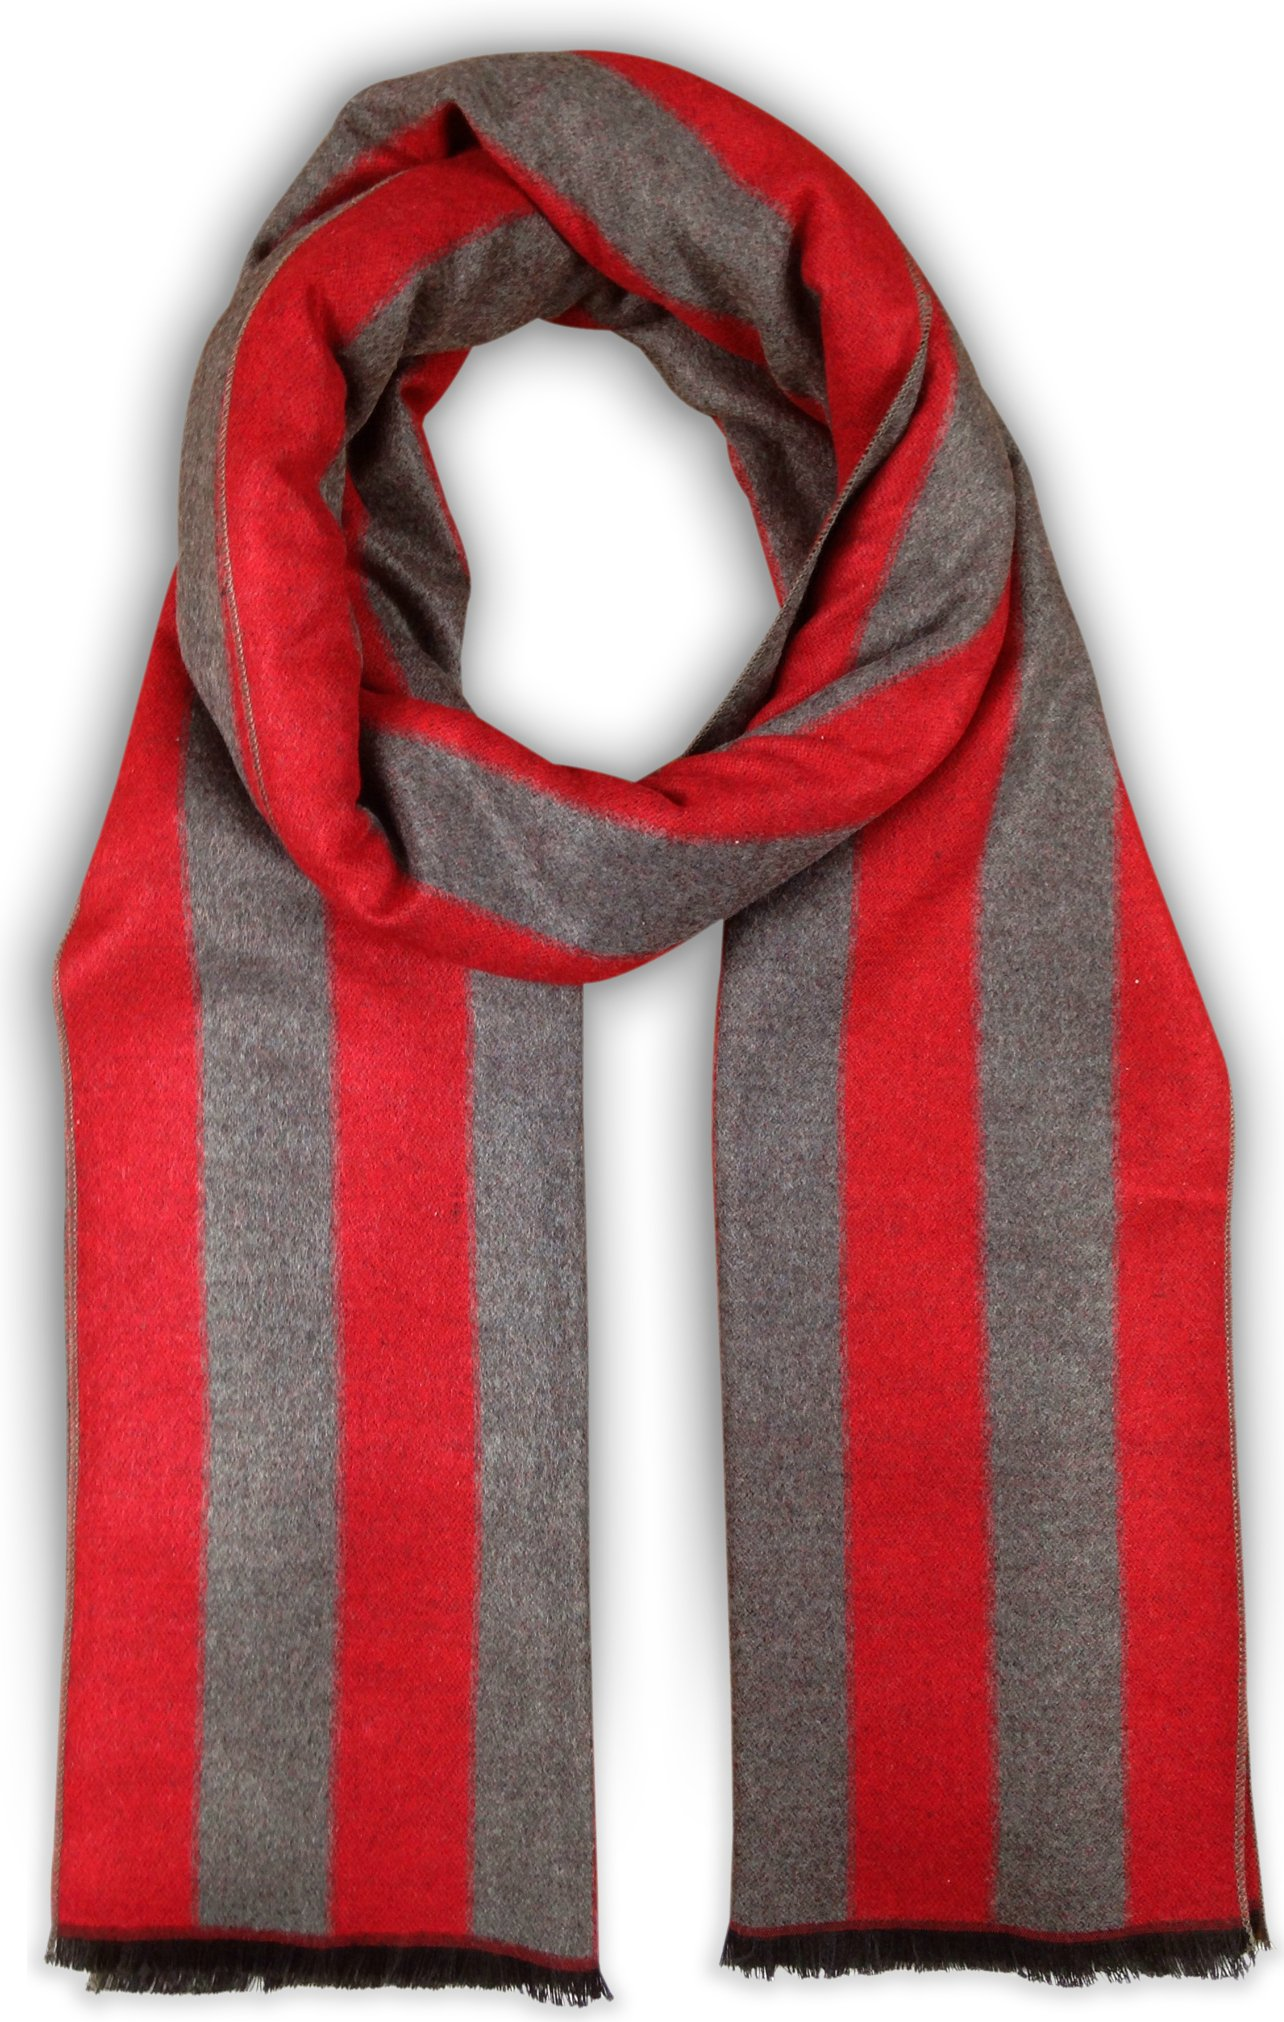 Bleu Nero Luxurious Winter Scarf for Men and Women – Large Selection of Unique Design Scarves – Super Soft Premium Cashmere Feel (Red/Grey Thick Vertical Stripes)